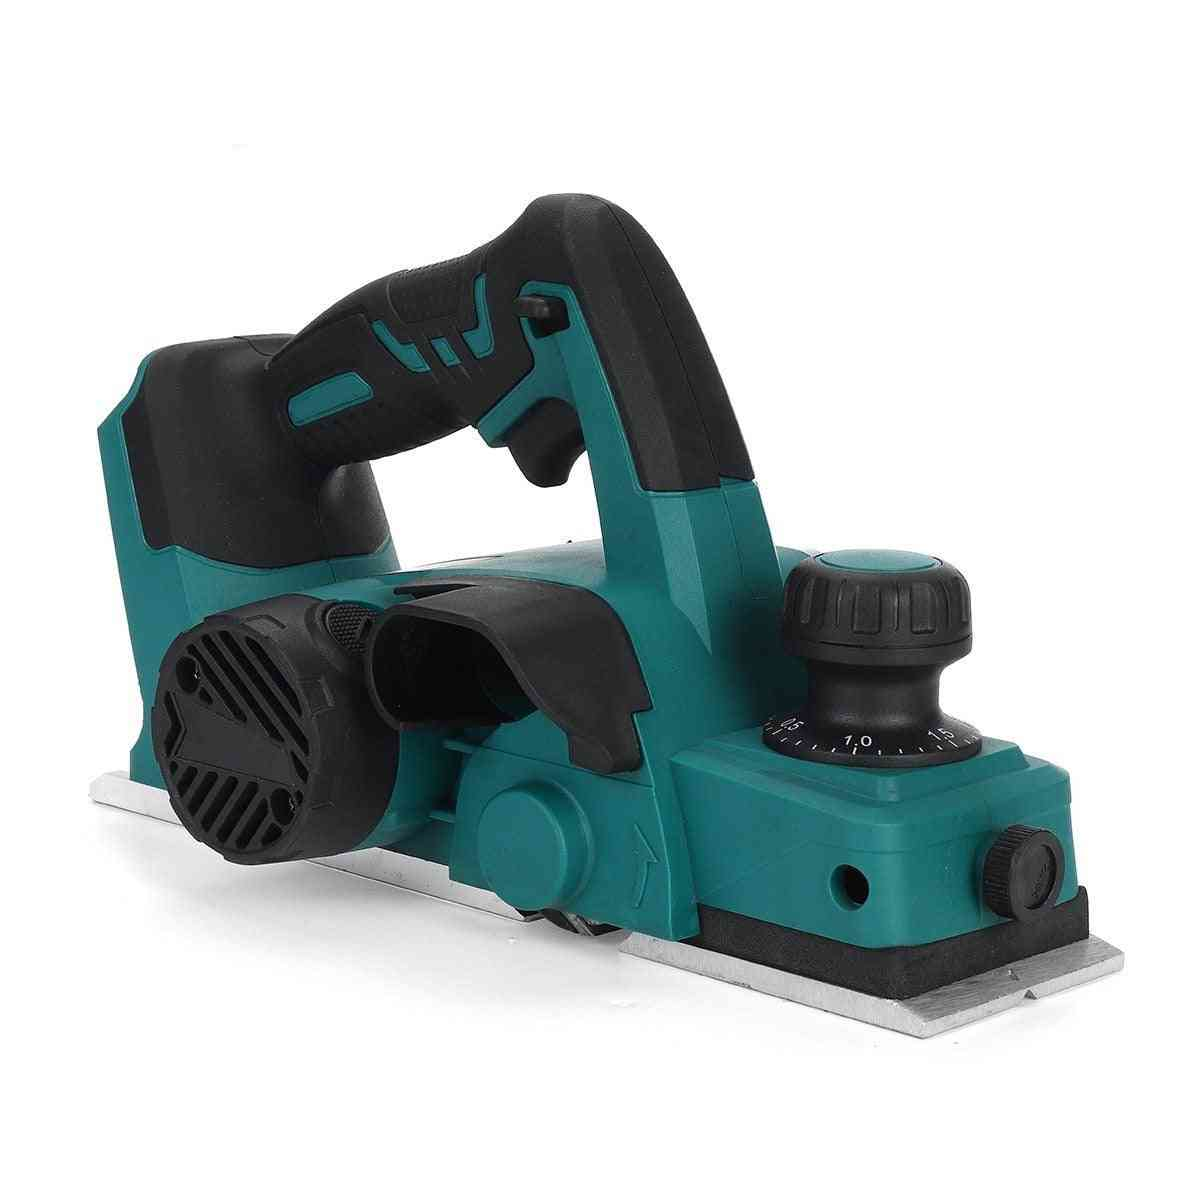 Cordless Electric Planer With Wrench Handheld Rechargeable For Wood Cutting